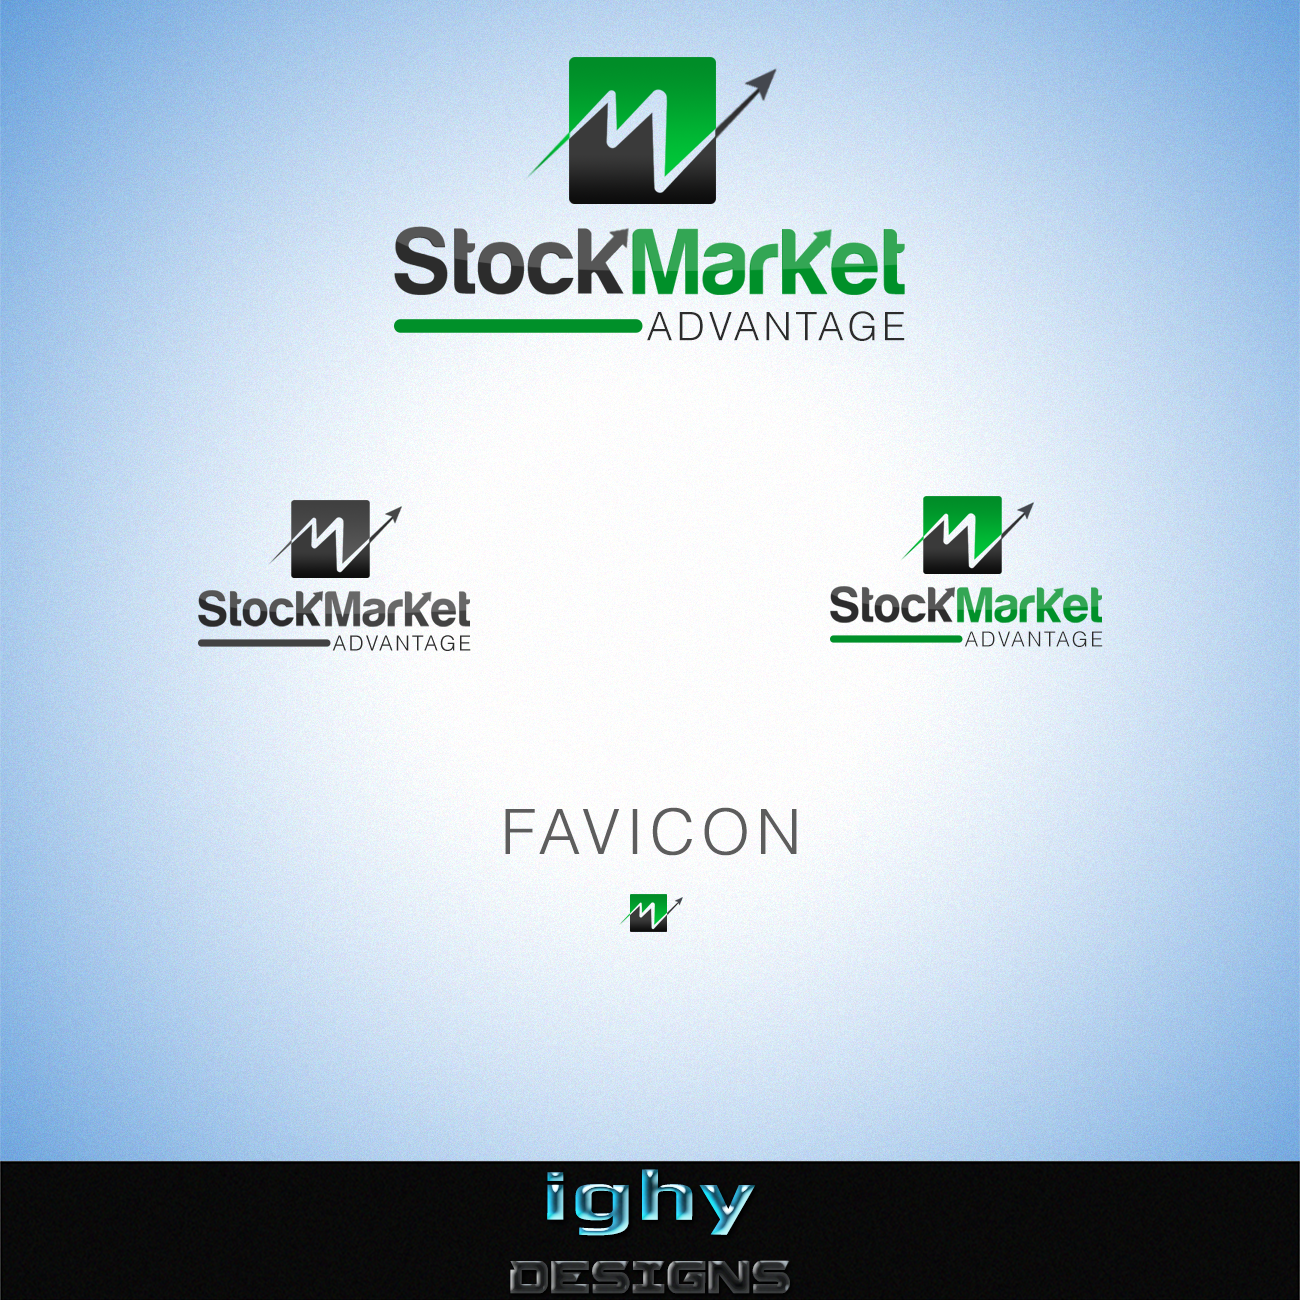 Stock Market by ighy1993